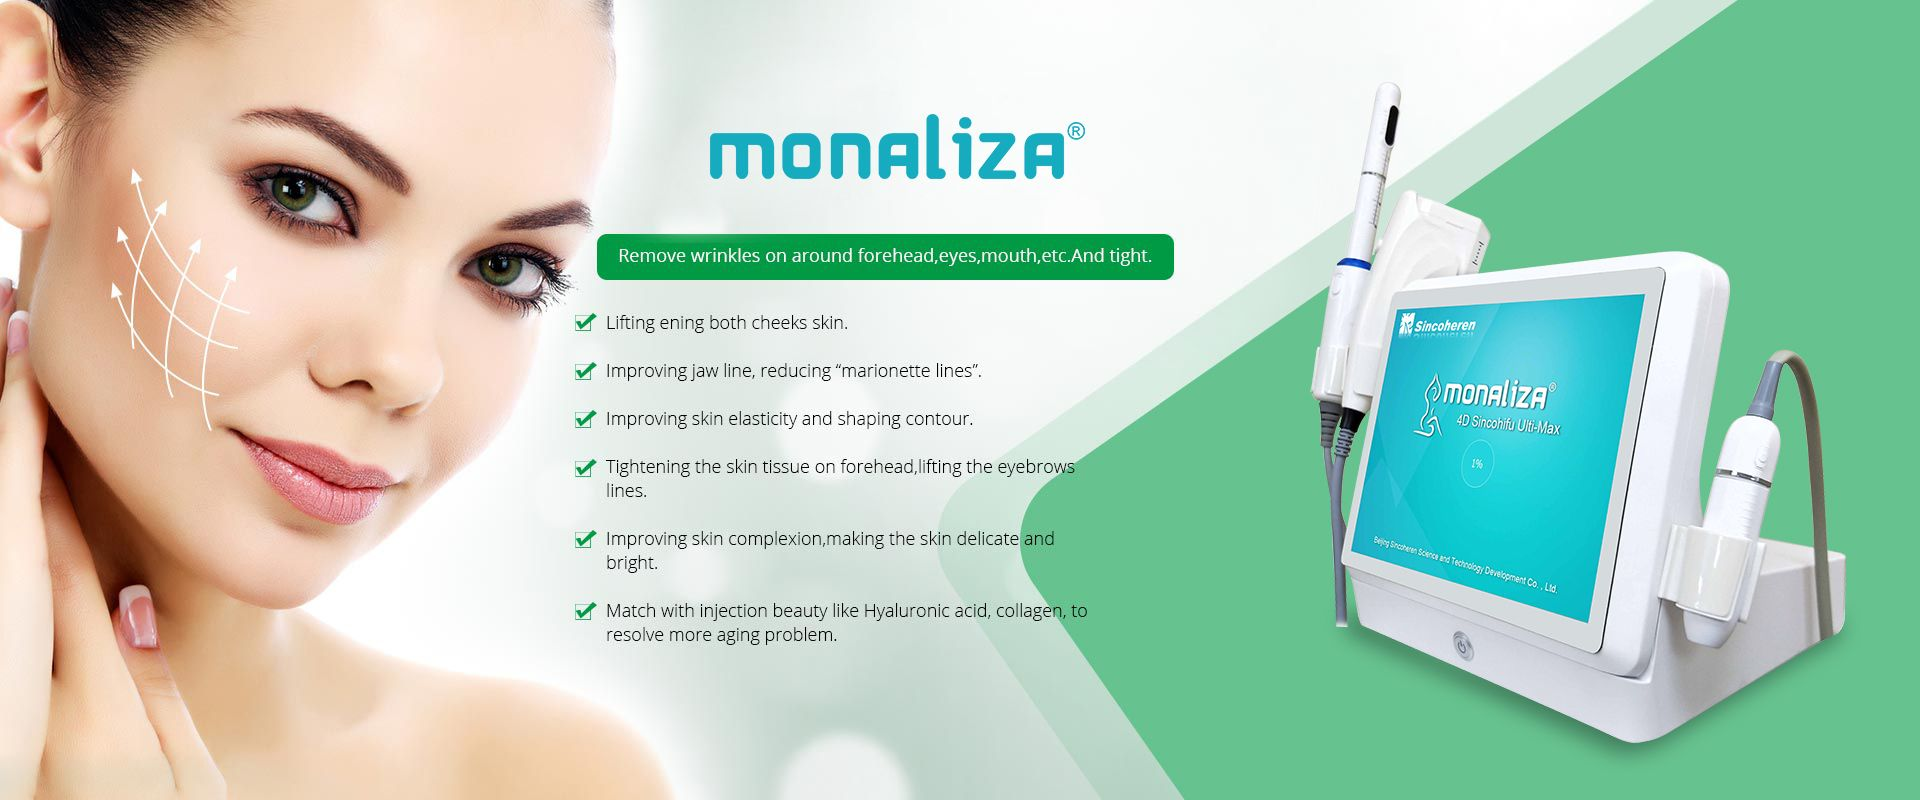 4D HIFU wrinkle removal and body slimming